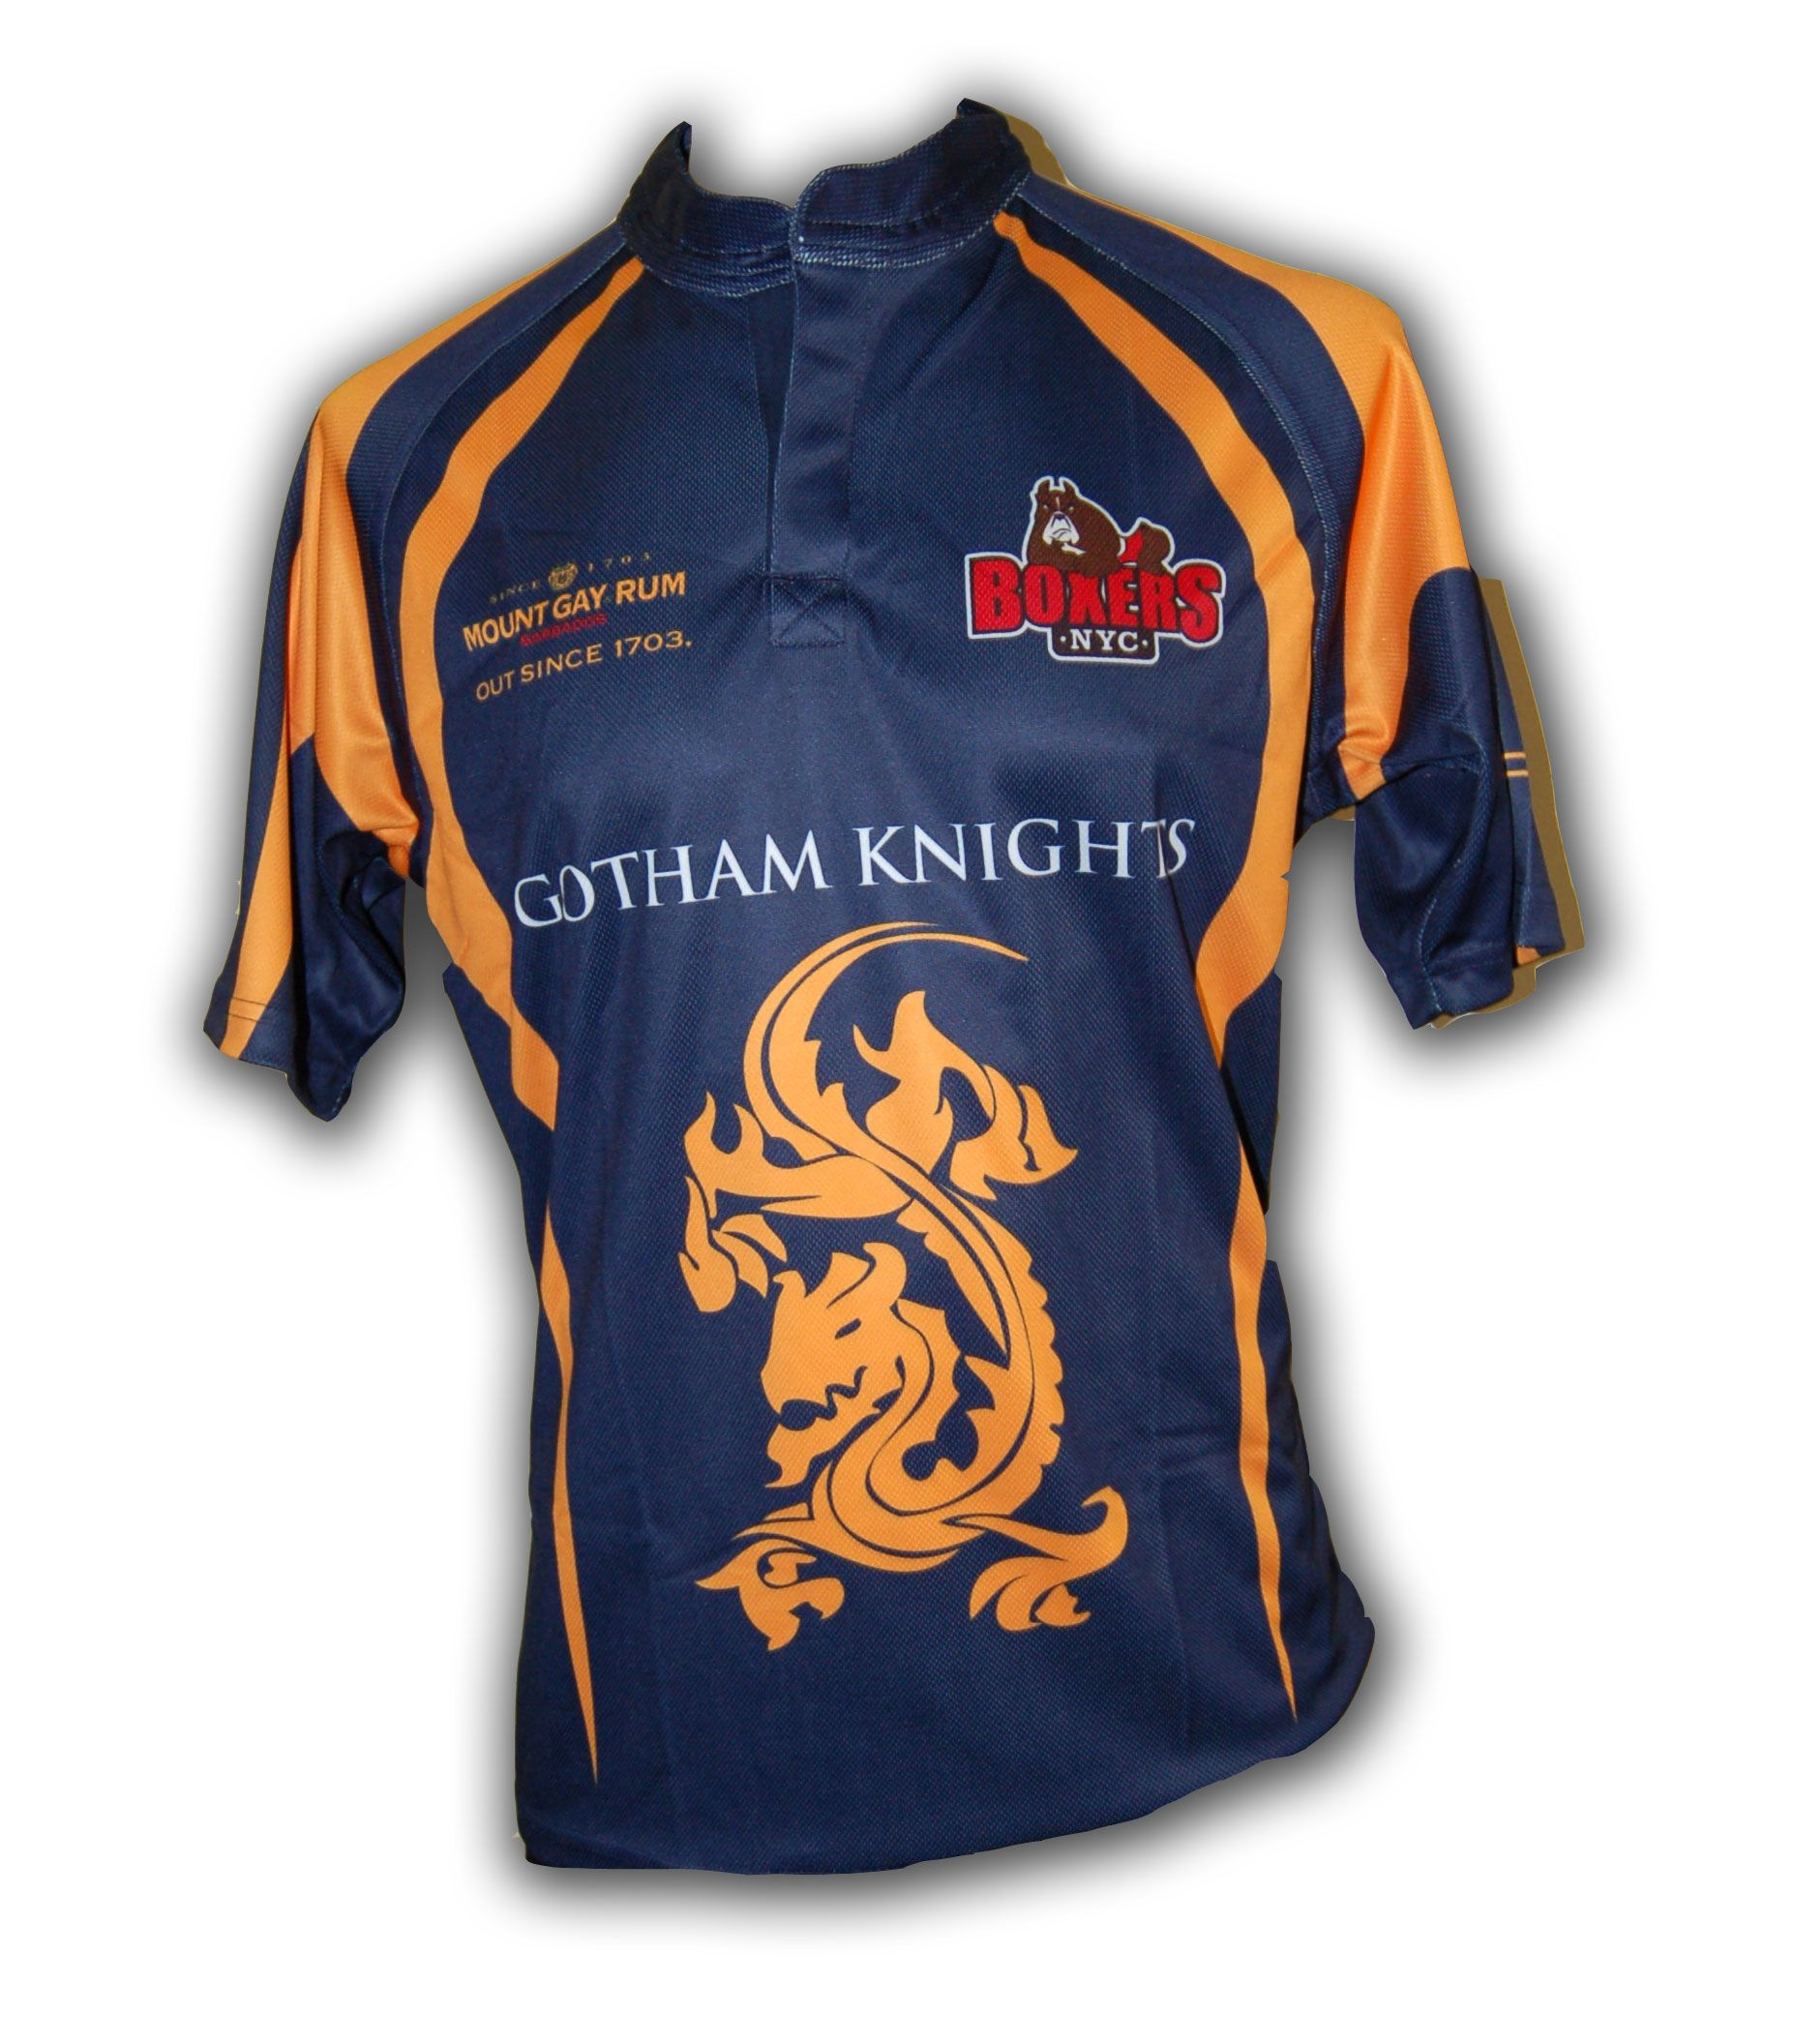 8ddf02e64c3 ... custom sublimated jersey from ruggers.